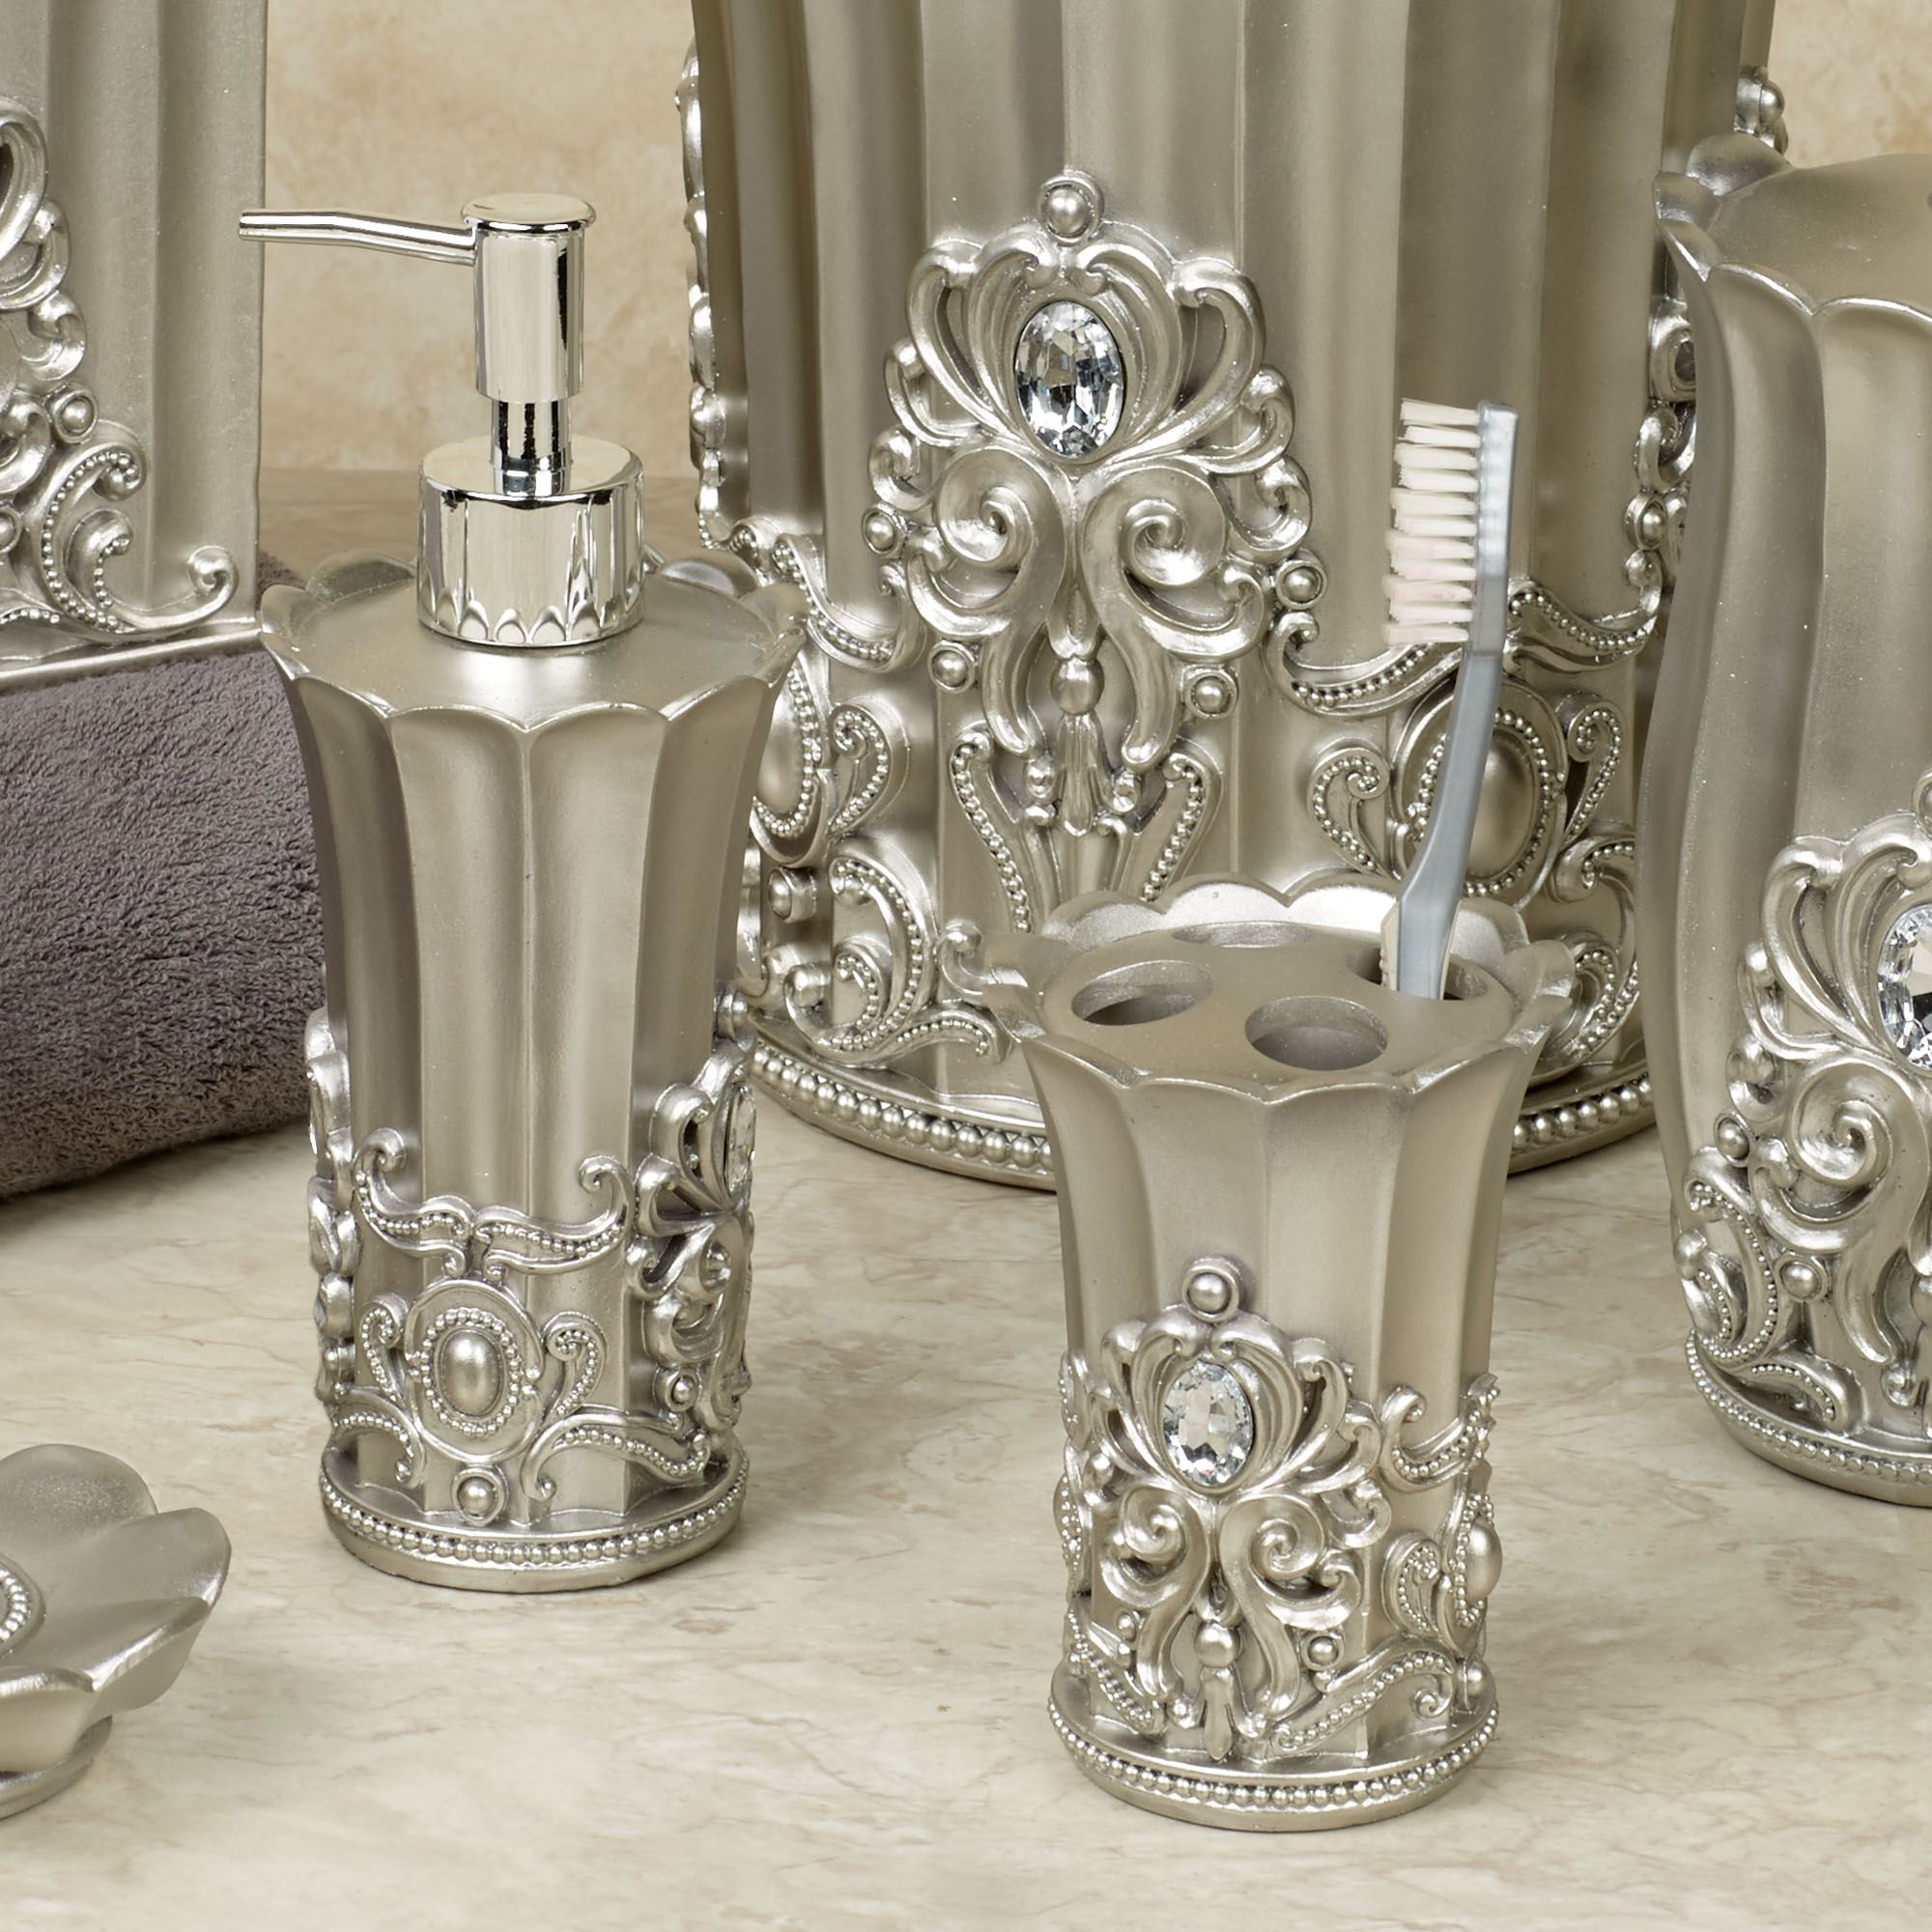 Bathroom Accessories Fatima Pewter Colored Bath Accessories